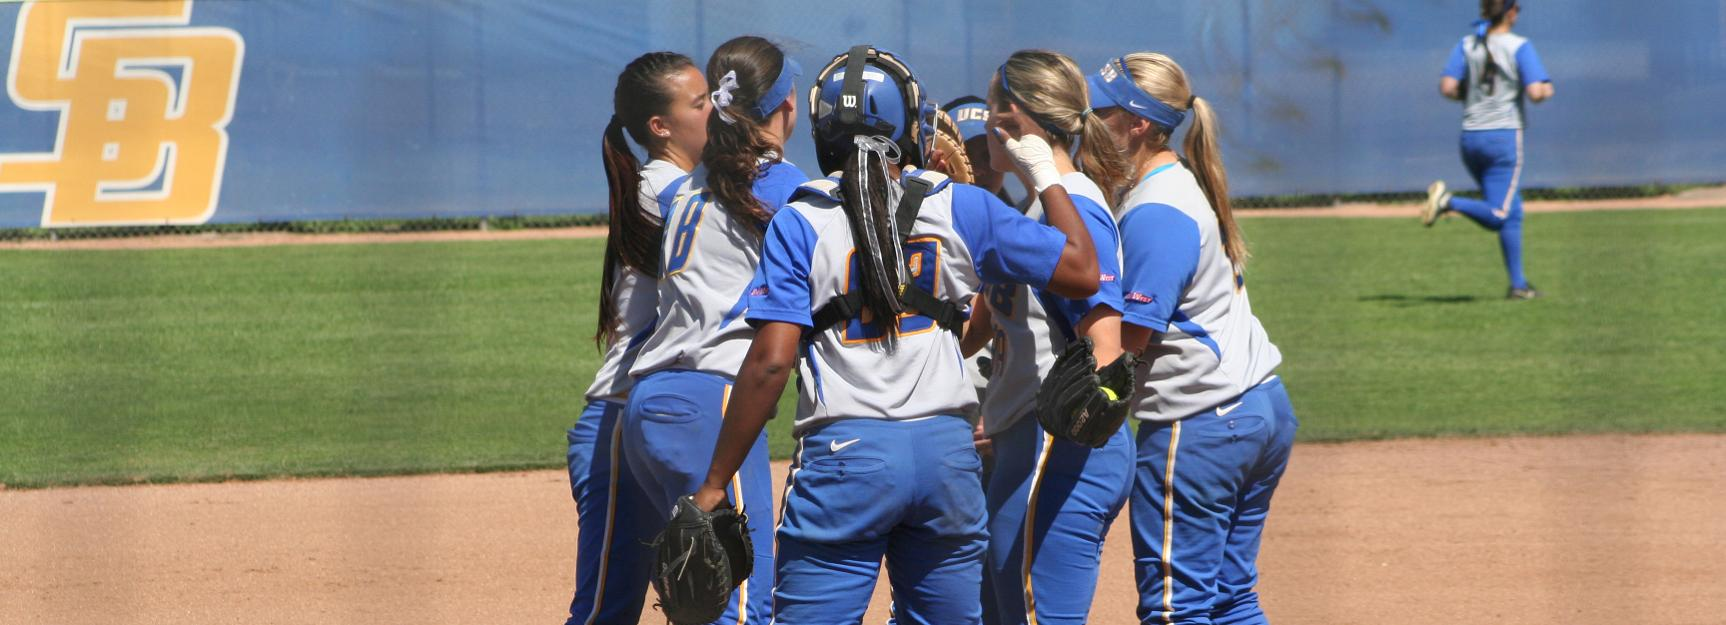 UCSB Takes On Long Beach State for Big West Crown